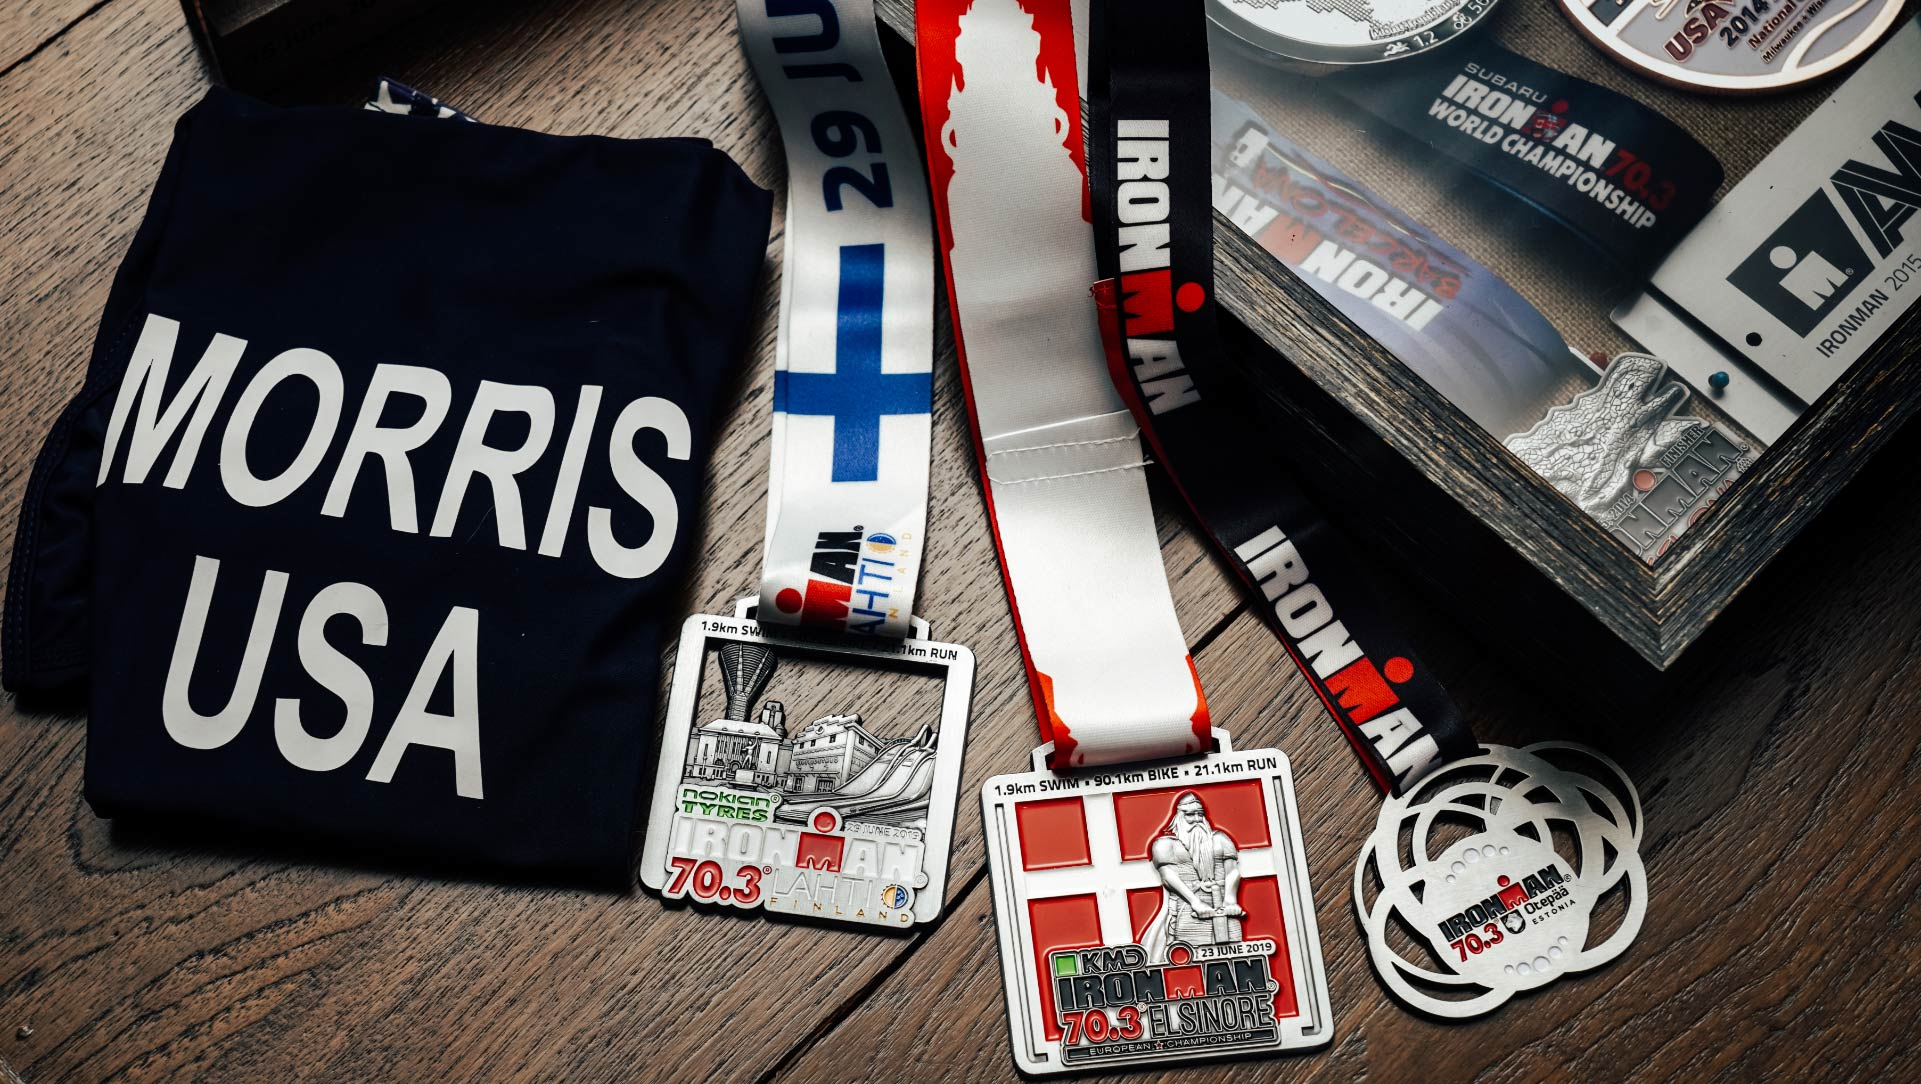 Several IRONMAN medals and mementoes of past races sit on a table.